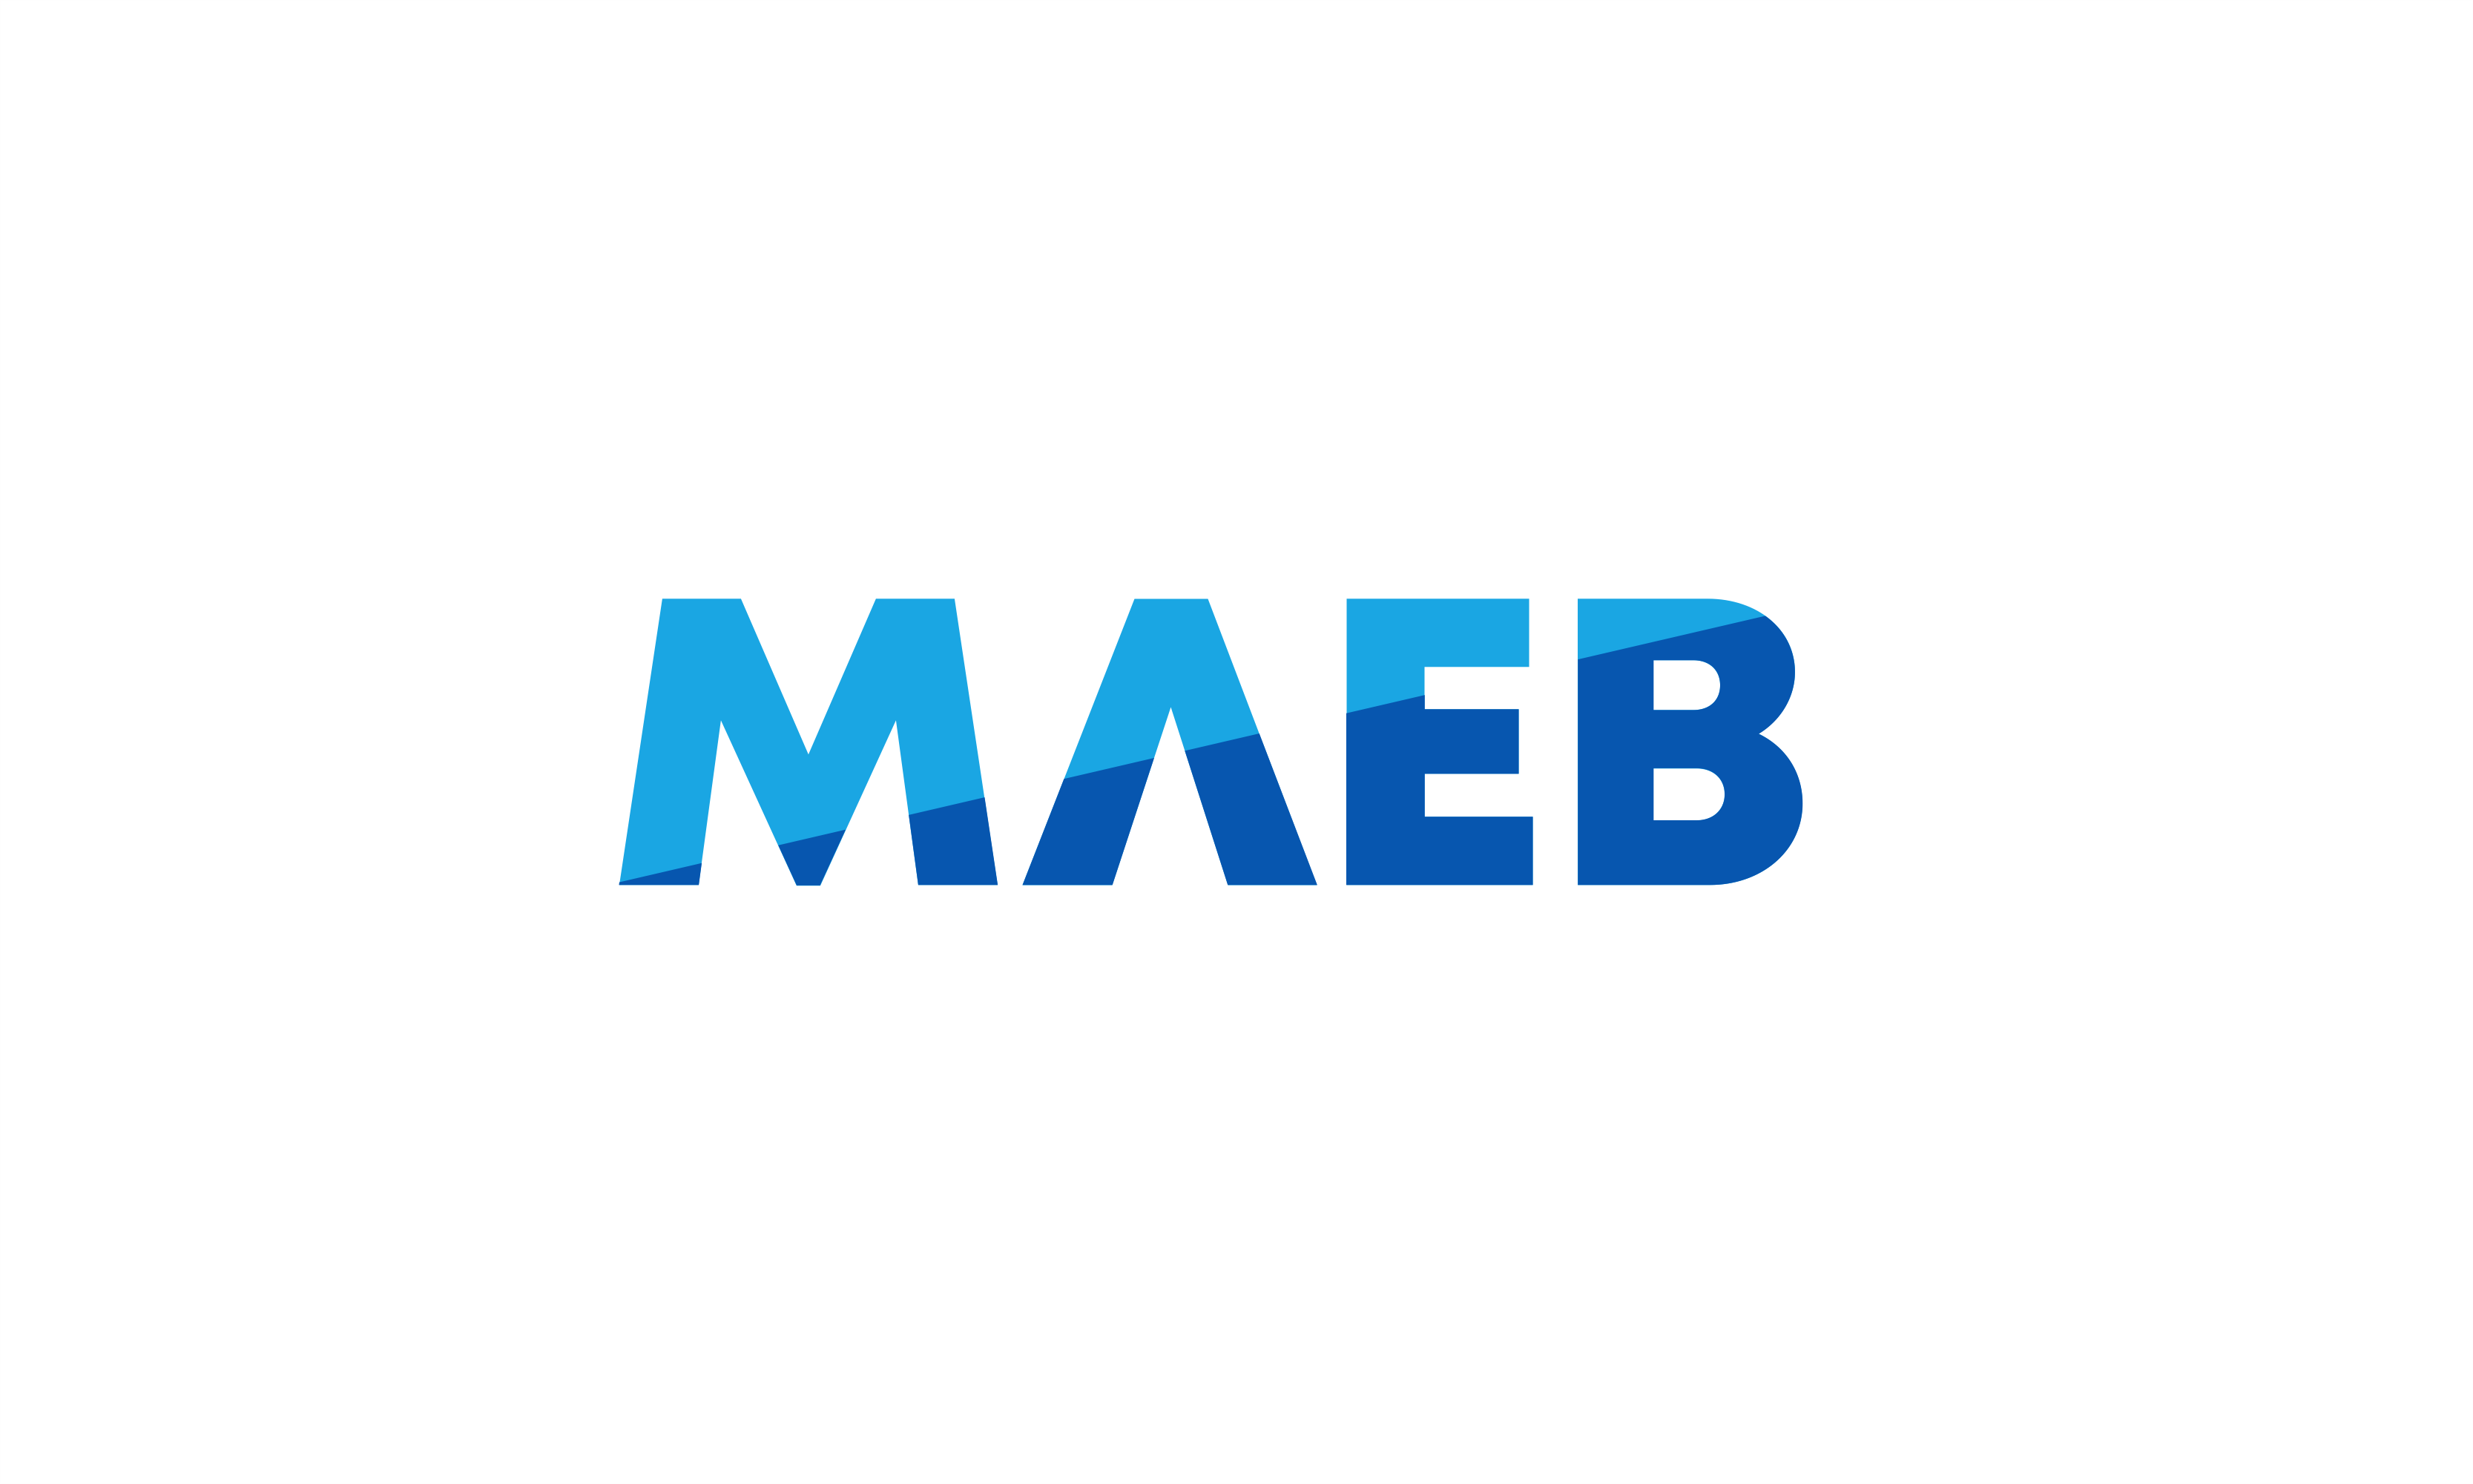 Maeb - Business company name for sale